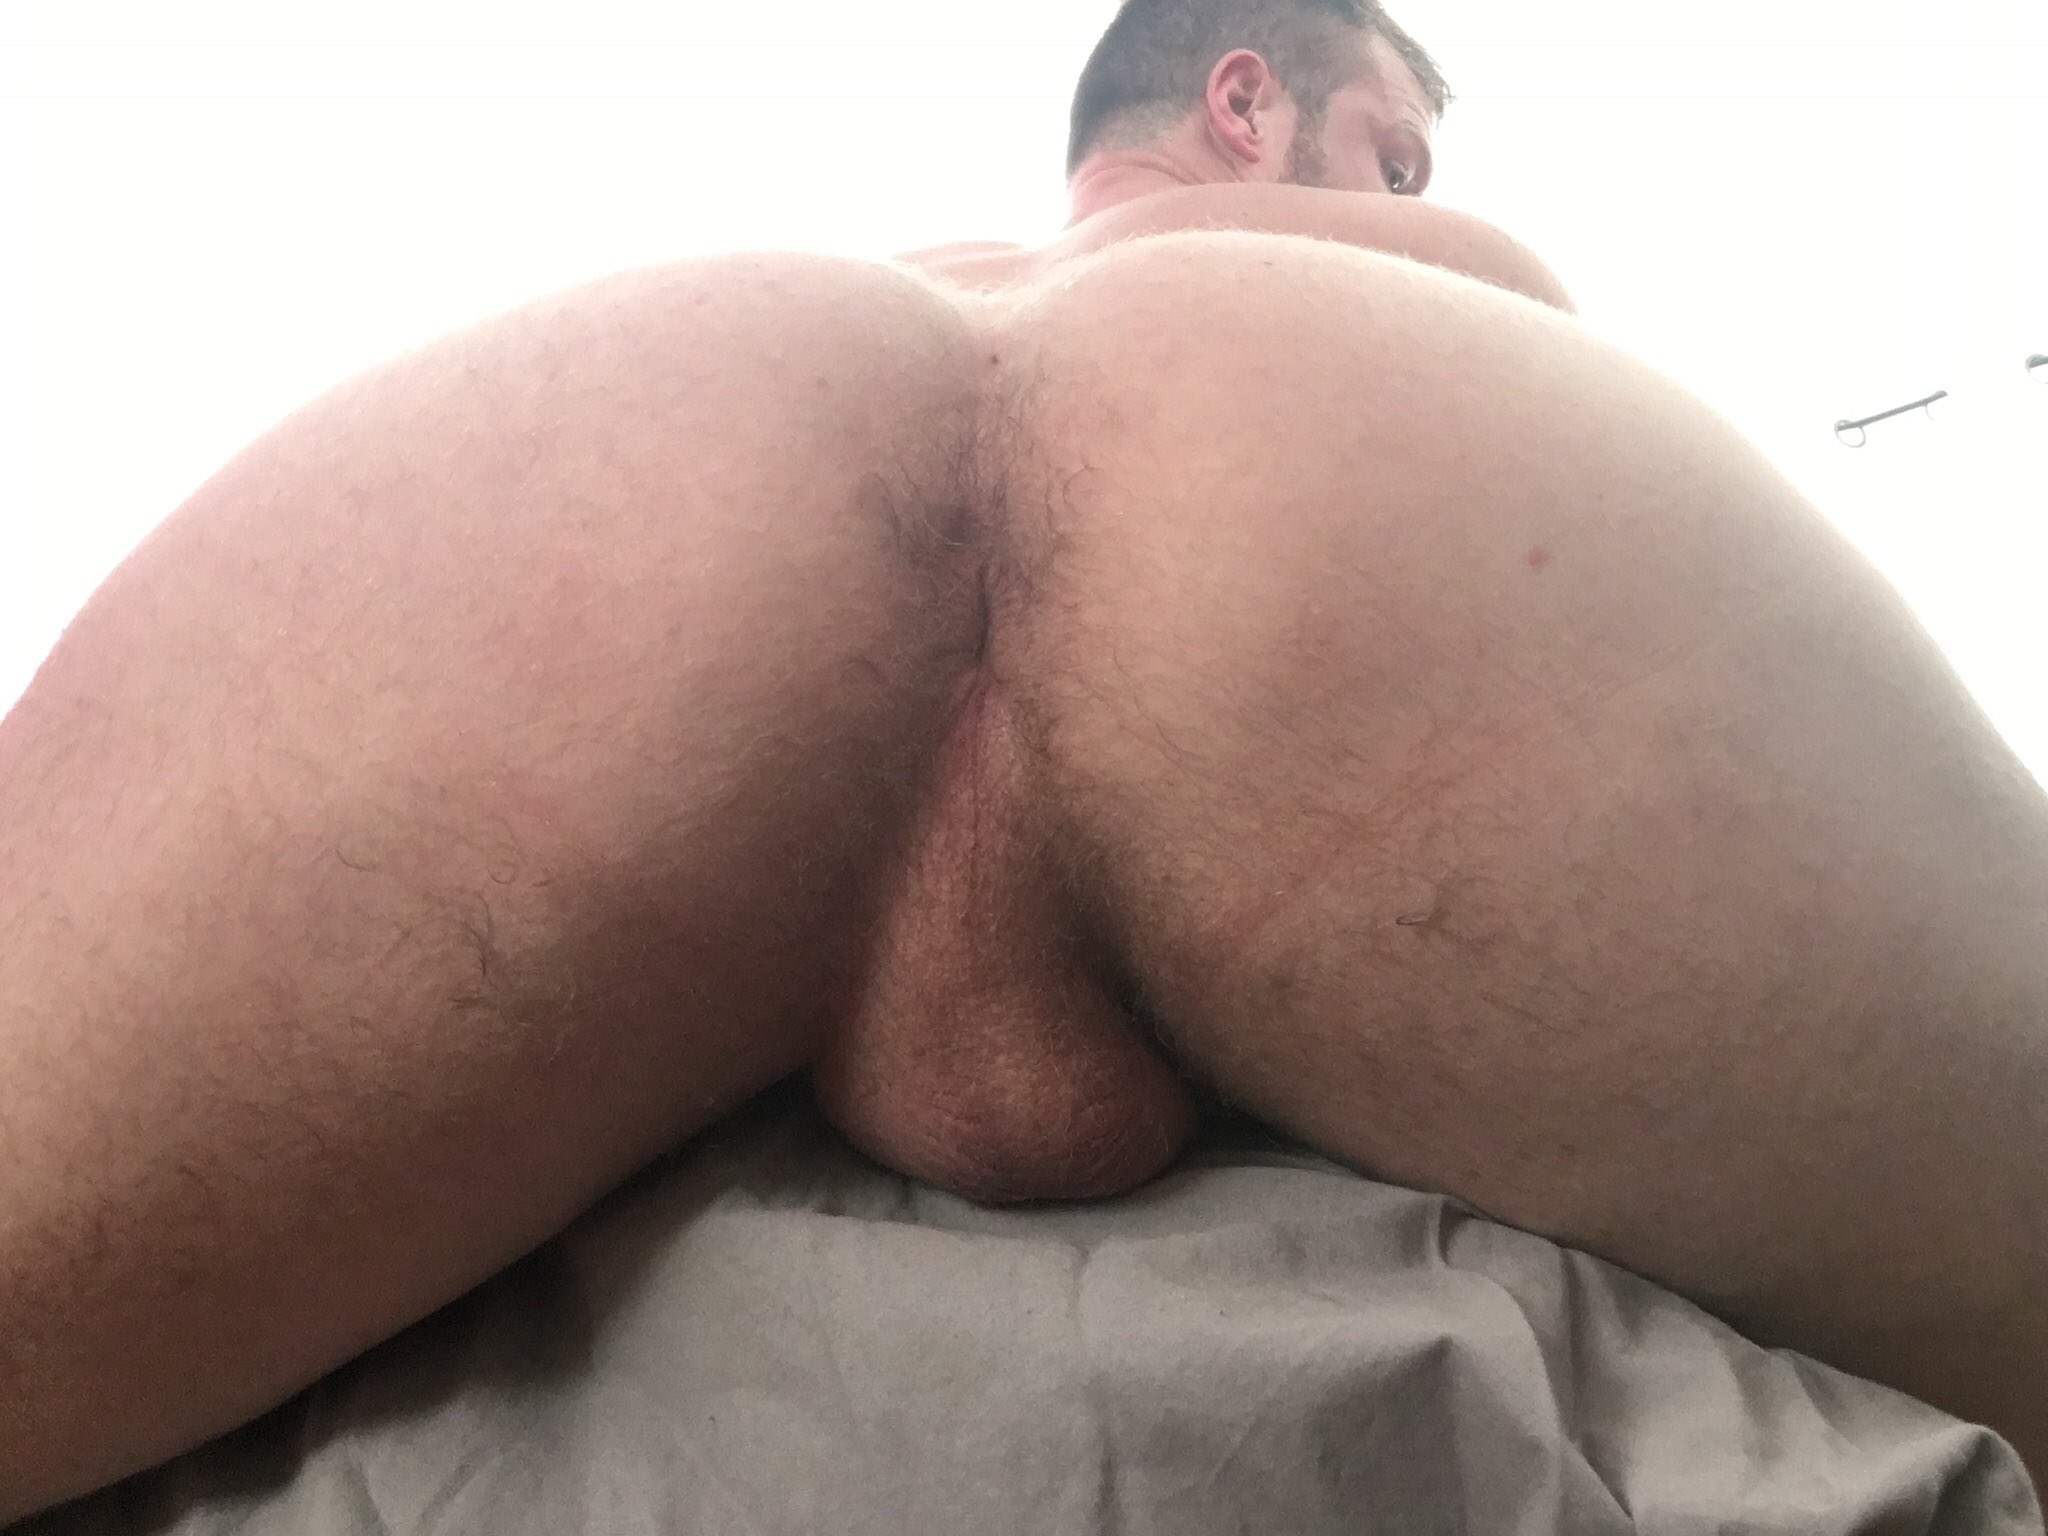 About to get WRECKED!!! Subscribe to OnlyFans and see by who! https://t.co/kJkZgkQ8PD https://t.co/BqmbnAEmWe